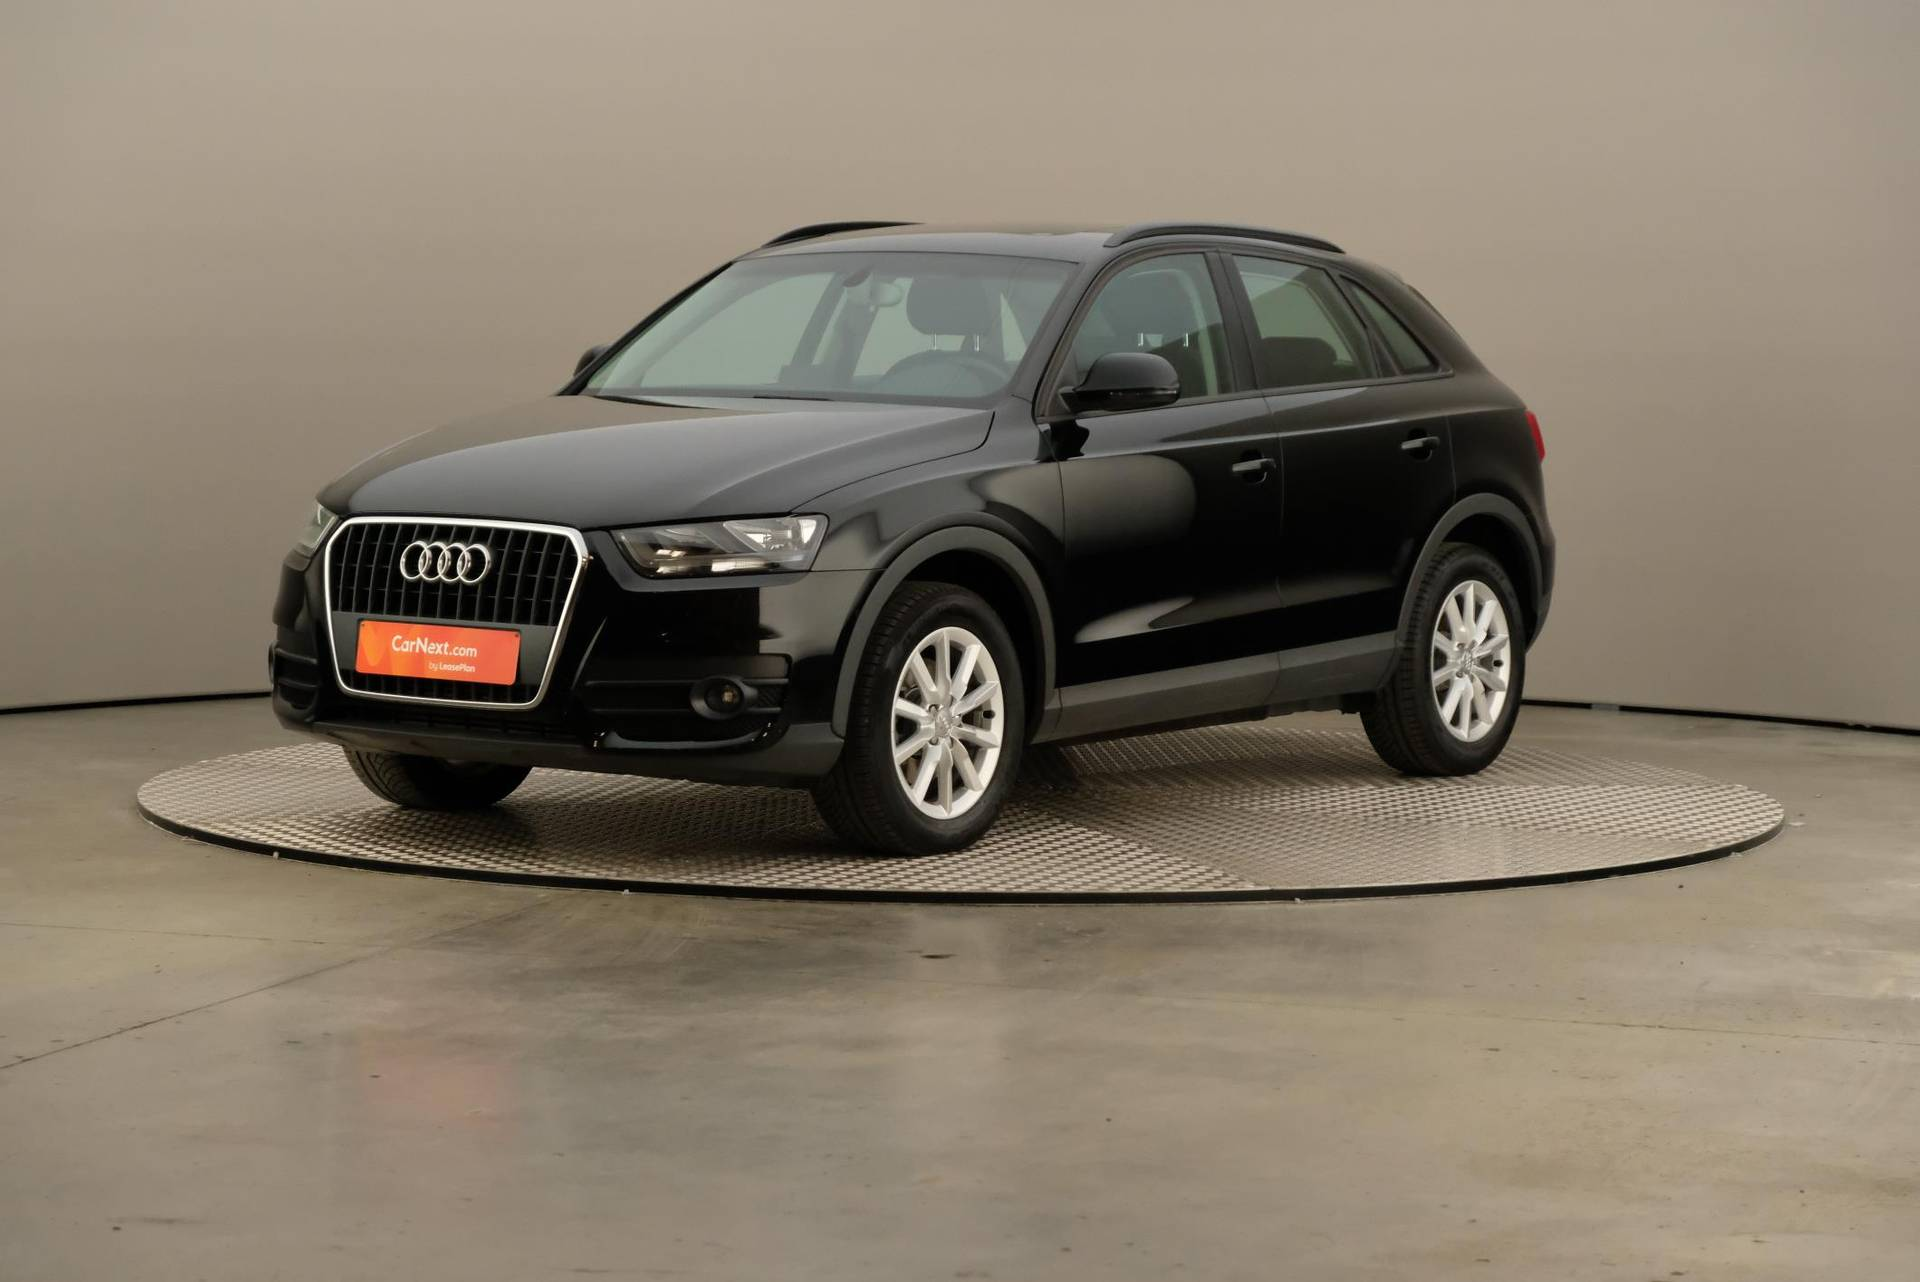 Audi Q3 2.0 TDI Adventure Plus S&S PANO MP3 BT GPS, 360-image35